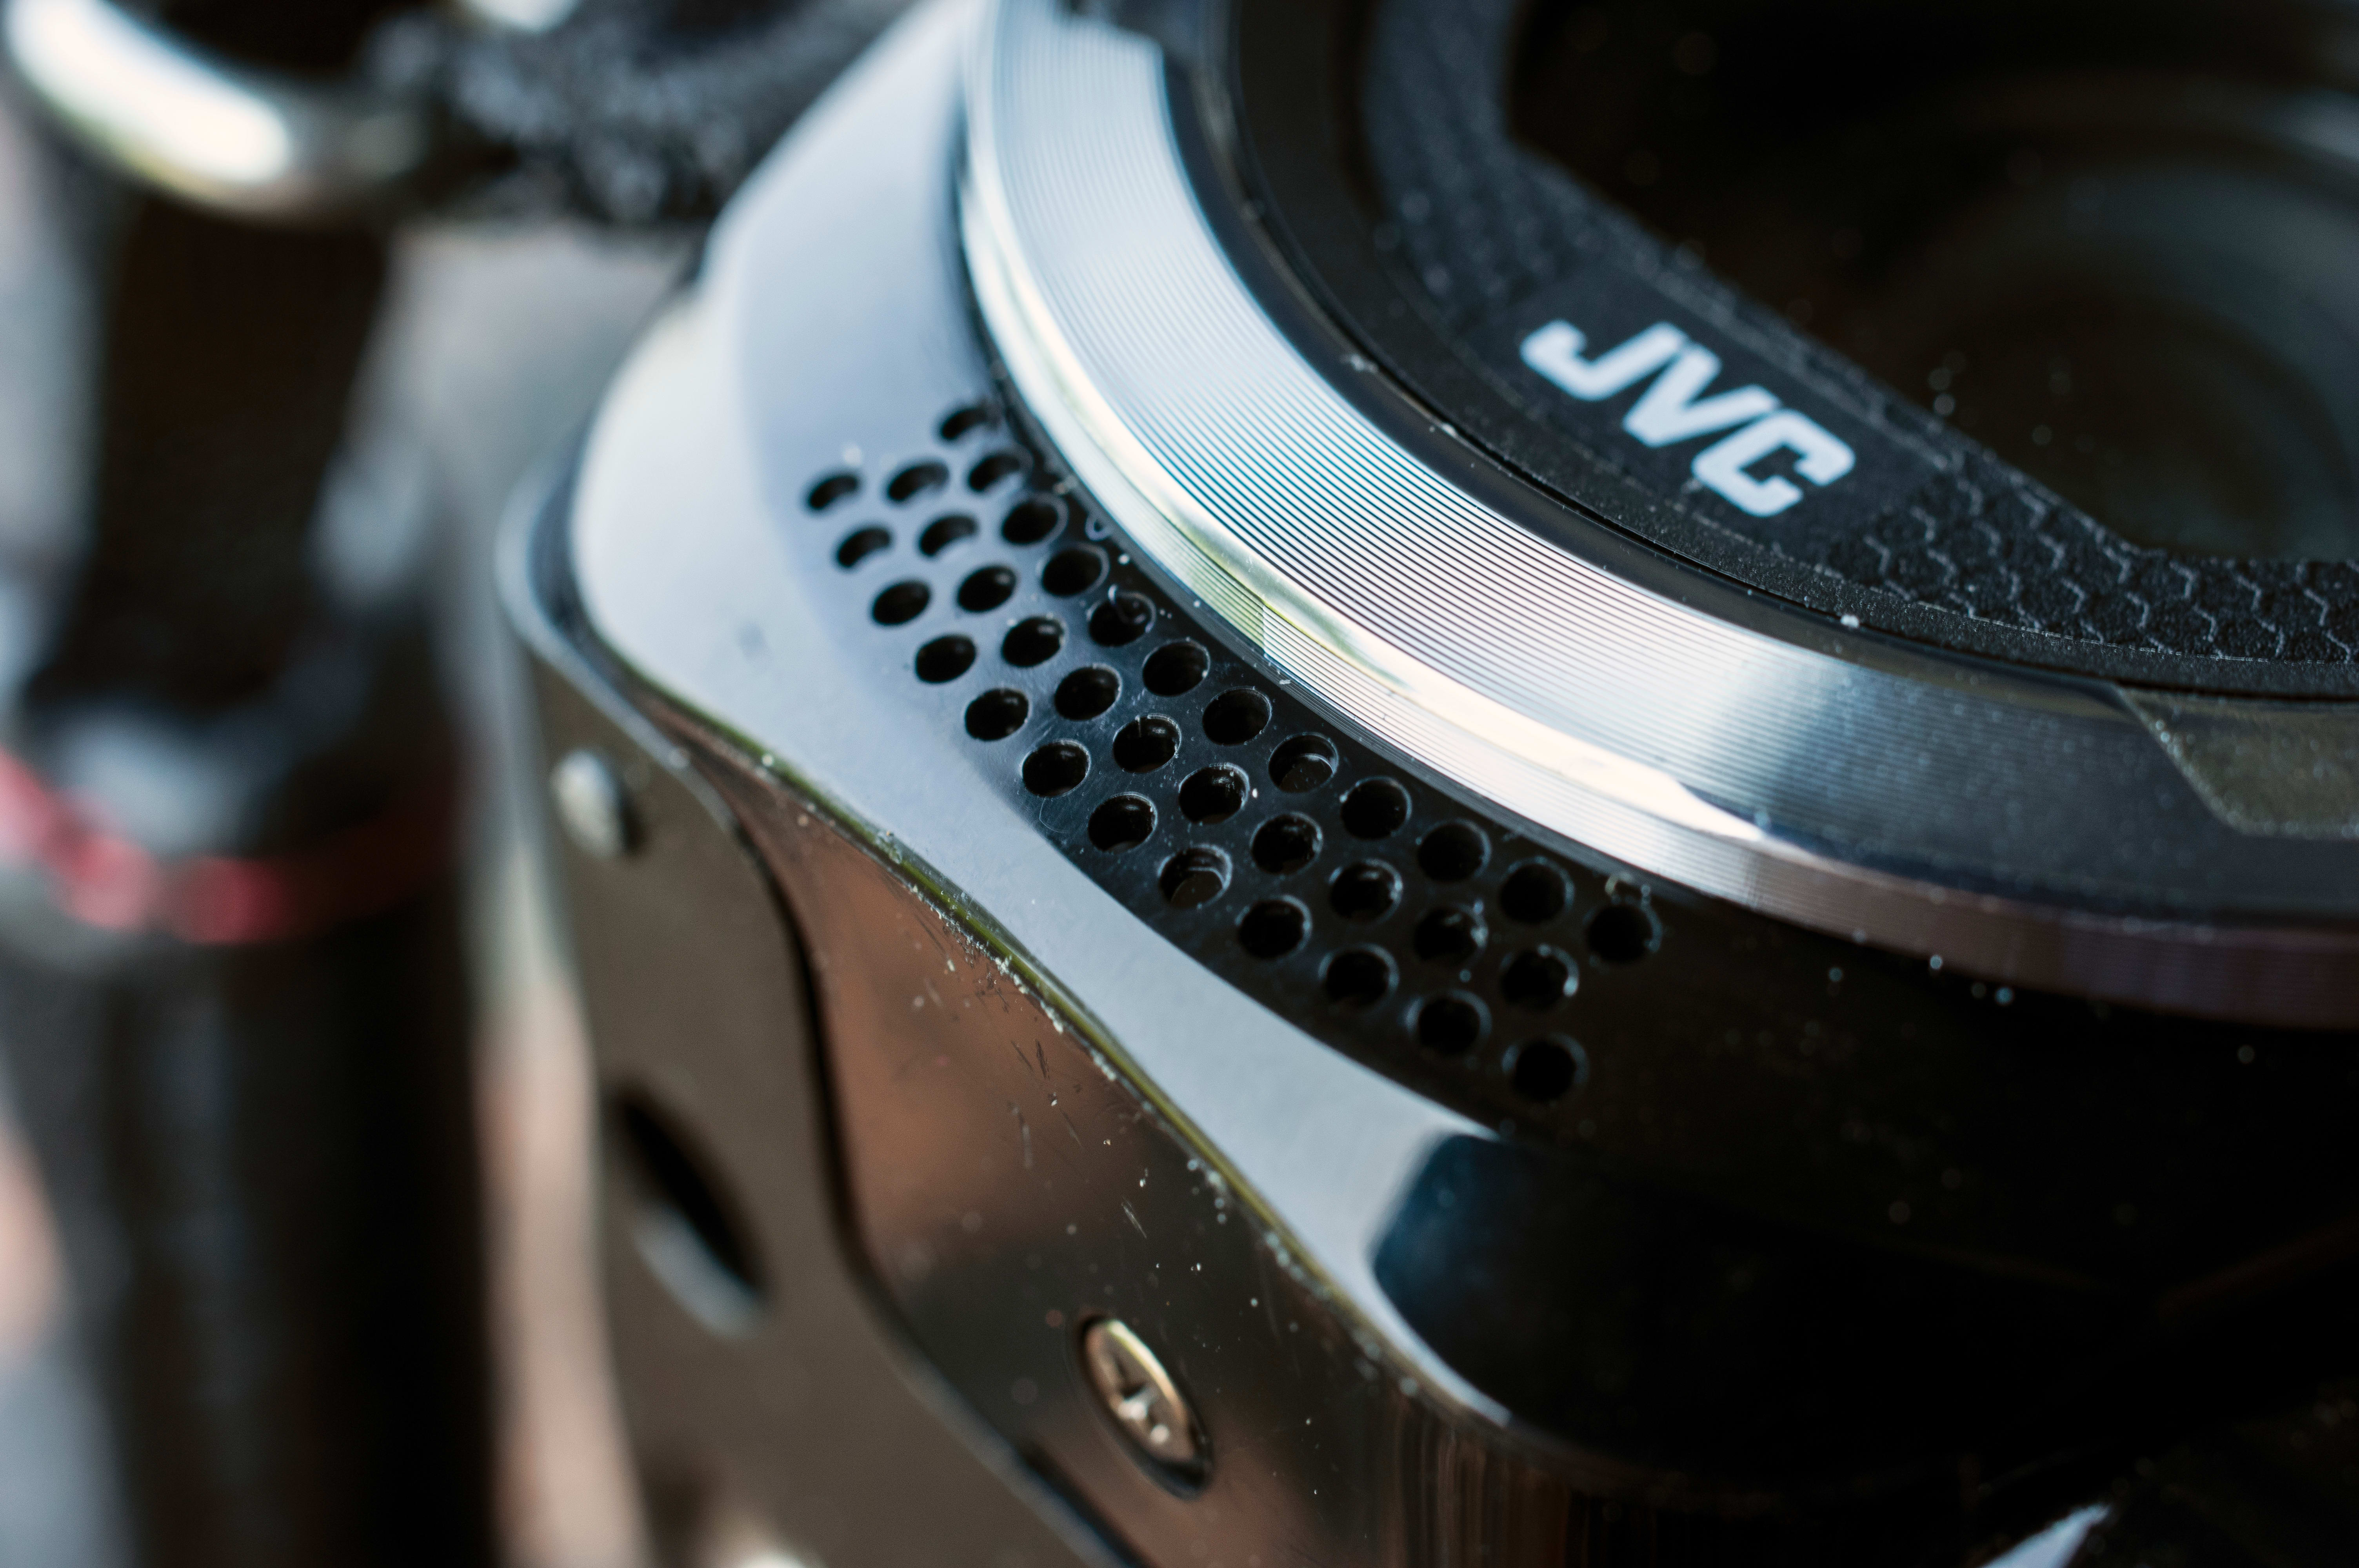 """The microphone for the The GZ-R10 is located right up front and allows for """"zooming""""."""